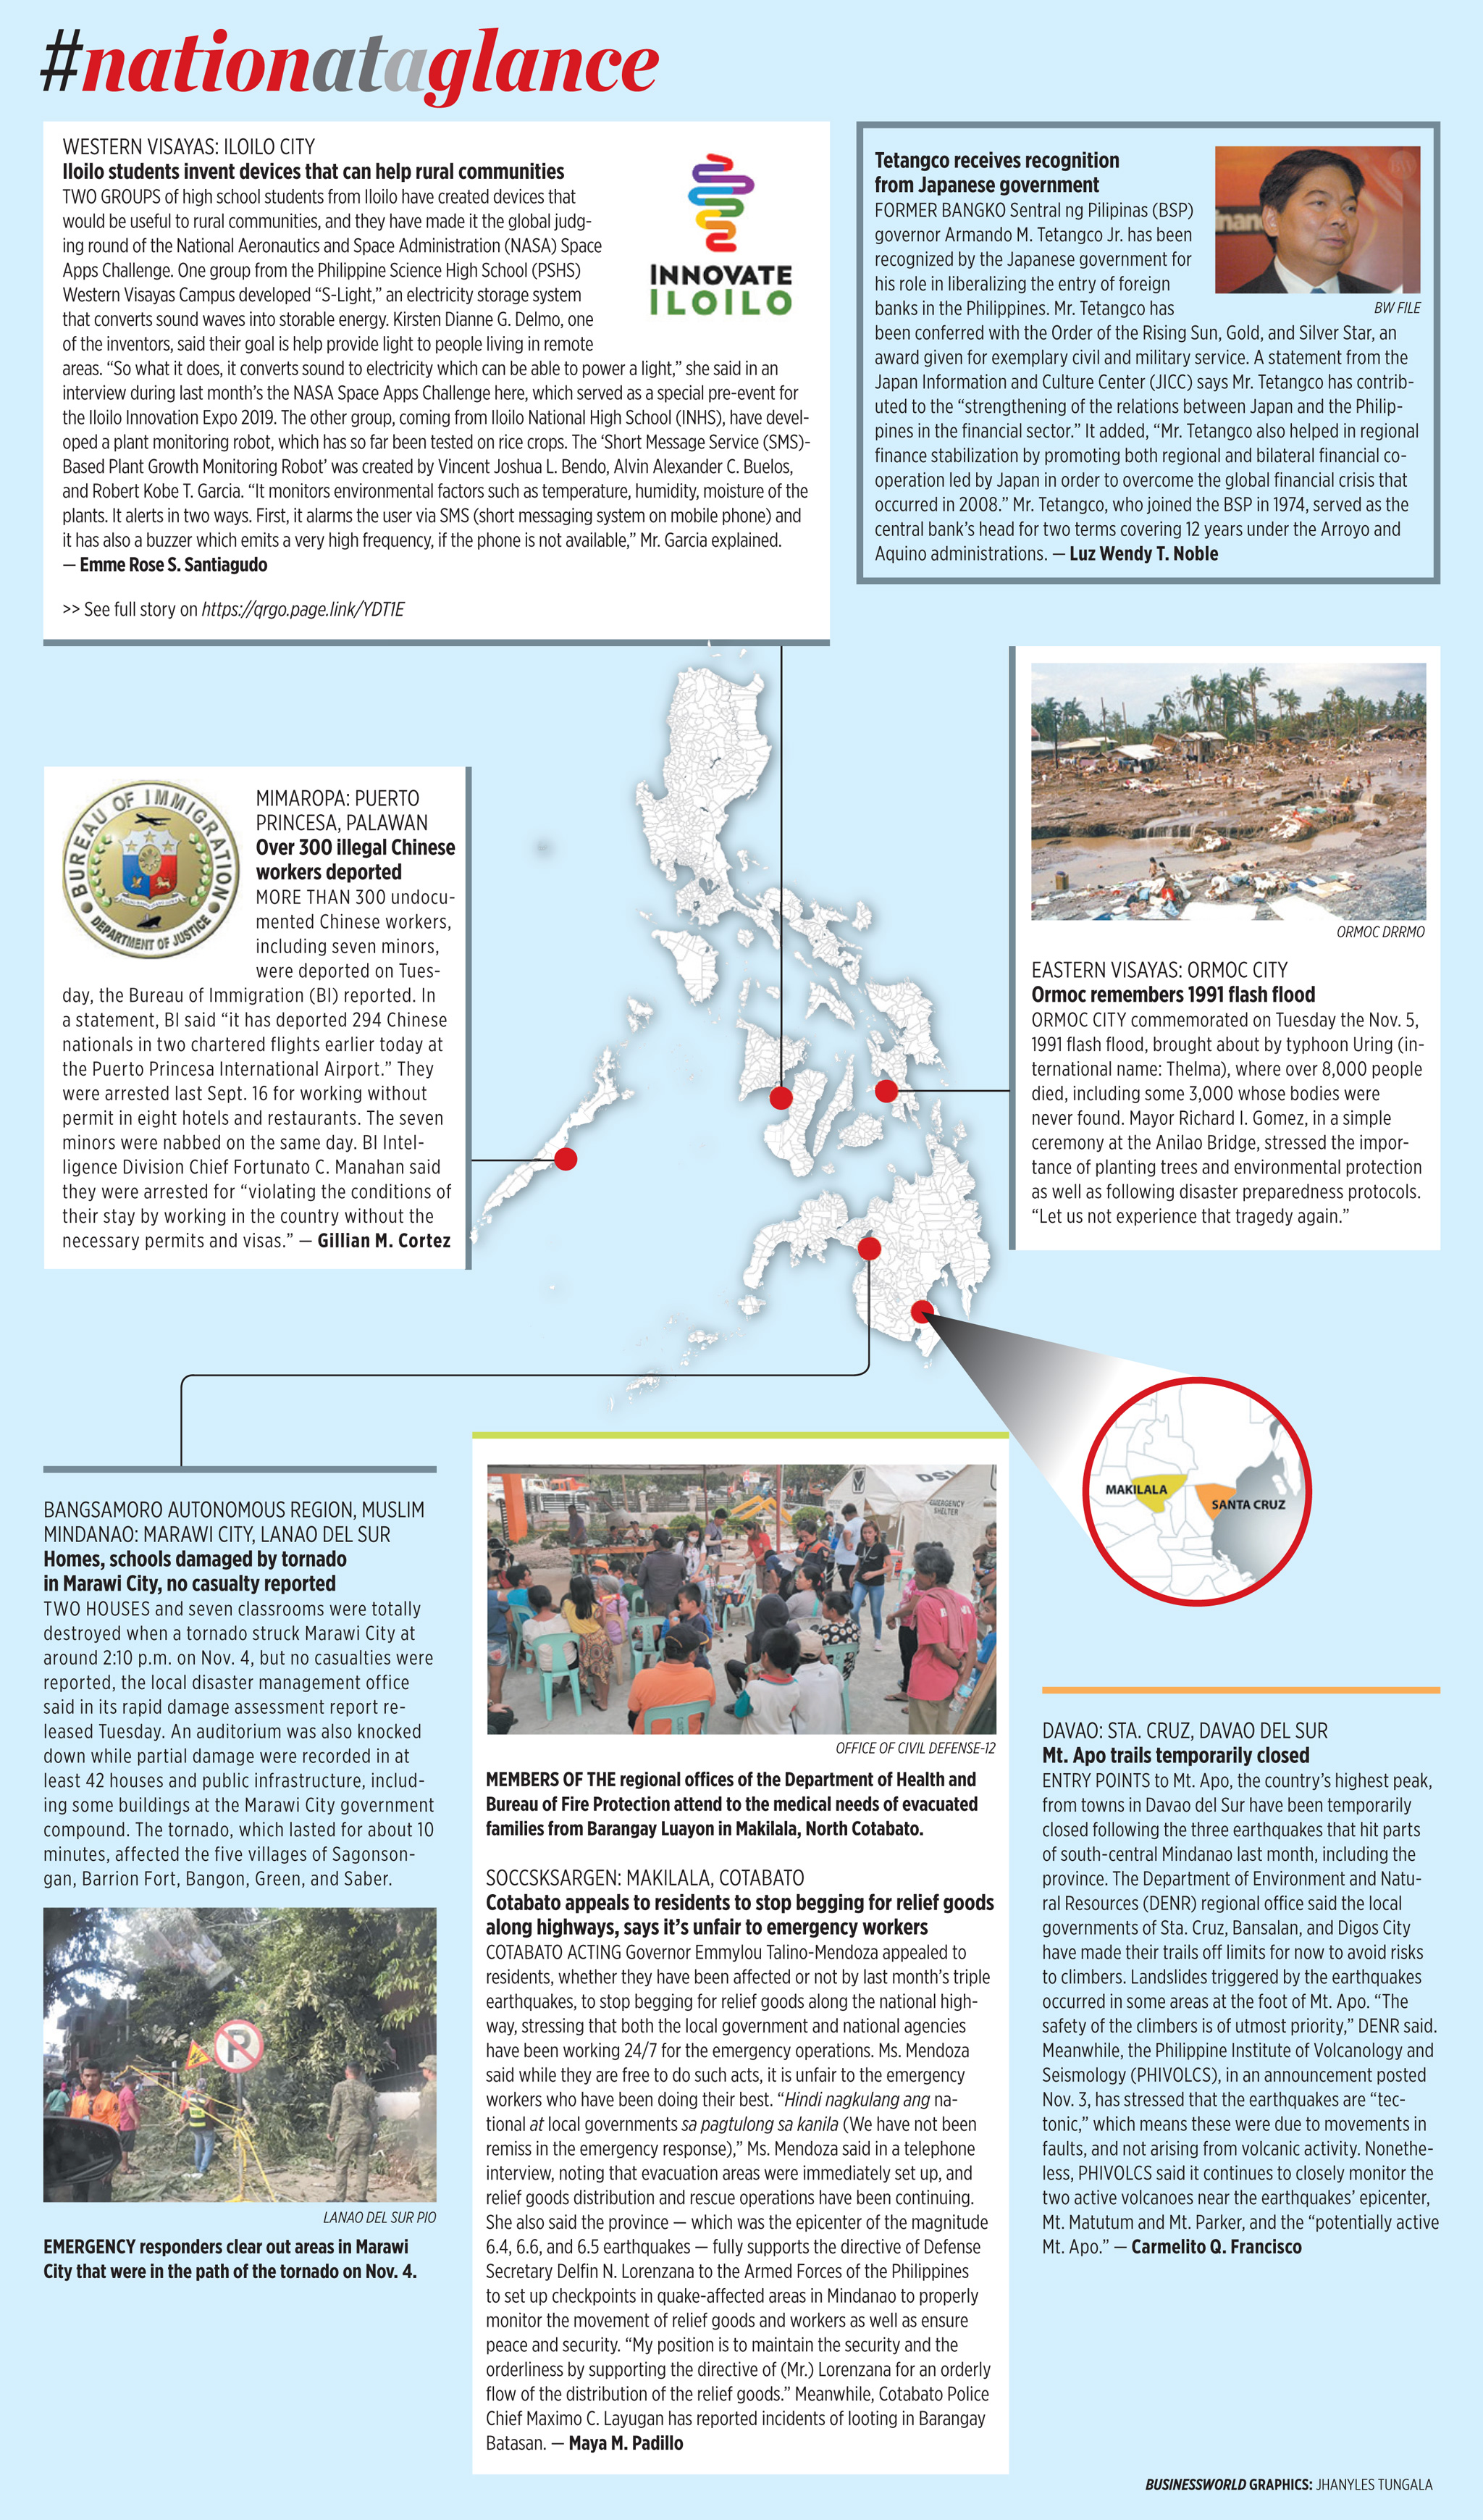 Nation at a Glance — (11/06/19)